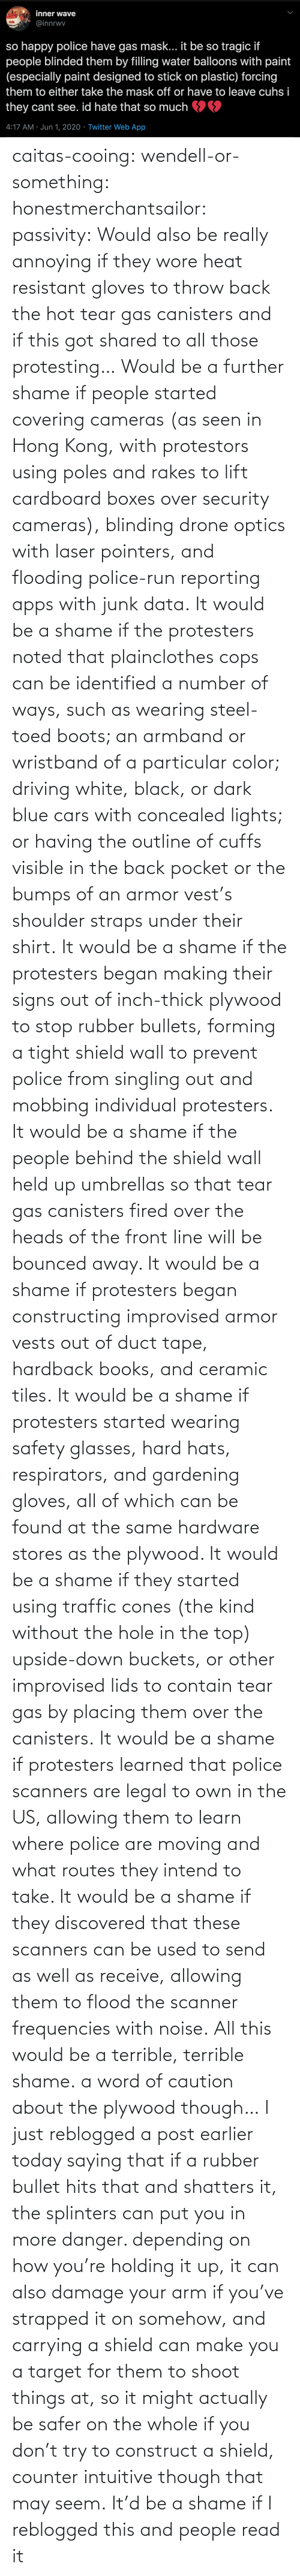 own: caitas-cooing:  wendell-or-something: honestmerchantsailor:  passivity: Would also be really annoying if they wore heat resistant gloves to throw back the hot tear gas canisters and if this got shared to all those protesting… Would be a further shame if people started covering cameras (as seen in Hong Kong, with protestors using poles and rakes to lift cardboard boxes over security cameras), blinding drone optics with laser pointers, and flooding police-run reporting apps with junk data. It would be a shame if the protesters noted that plainclothes cops can be identified a number of ways, such as wearing steel-toed boots; an armband or wristband of a particular color; driving white, black, or dark blue cars with concealed lights; or having the outline of cuffs visible in the back pocket or the bumps of an armor vest's shoulder straps under their shirt. It would be a shame if the protesters began making their signs out of inch-thick plywood to stop rubber bullets, forming a tight shield wall to prevent police from singling out and mobbing individual protesters. It would be a shame if the people behind the shield wall held up umbrellas so that tear gas canisters fired over the heads of the front line will be bounced away. It would be a shame if protesters began constructing improvised armor vests out of duct tape, hardback books, and ceramic tiles. It would be a shame if protesters started wearing safety glasses, hard hats, respirators, and gardening gloves, all of which can be found at the same hardware stores as the plywood. It would be a shame if they started using traffic cones (the kind without the hole in the top) upside-down buckets, or other improvised lids to contain tear gas by placing them over the canisters. It would be a shame if protesters learned that police scanners are legal to own in the US, allowing them to learn where police are moving and what routes they intend to take. It would be a shame if they discovered that these scanners can be used to send as well as receive, allowing them to flood the scanner frequencies with noise. All this would be a terrible, terrible shame.    a word of caution about the plywood though… I just reblogged a post earlier today saying that if a rubber bullet hits that and shatters it, the splinters can put you in more danger. depending on how you're holding it up, it can also damage your arm if you've strapped it on somehow, and carrying a shield can make you a target for them to shoot things at, so it might actually be safer on the whole if you don't try to construct a shield, counter intuitive though that may seem.    It'd be a shame if I reblogged this and people read it